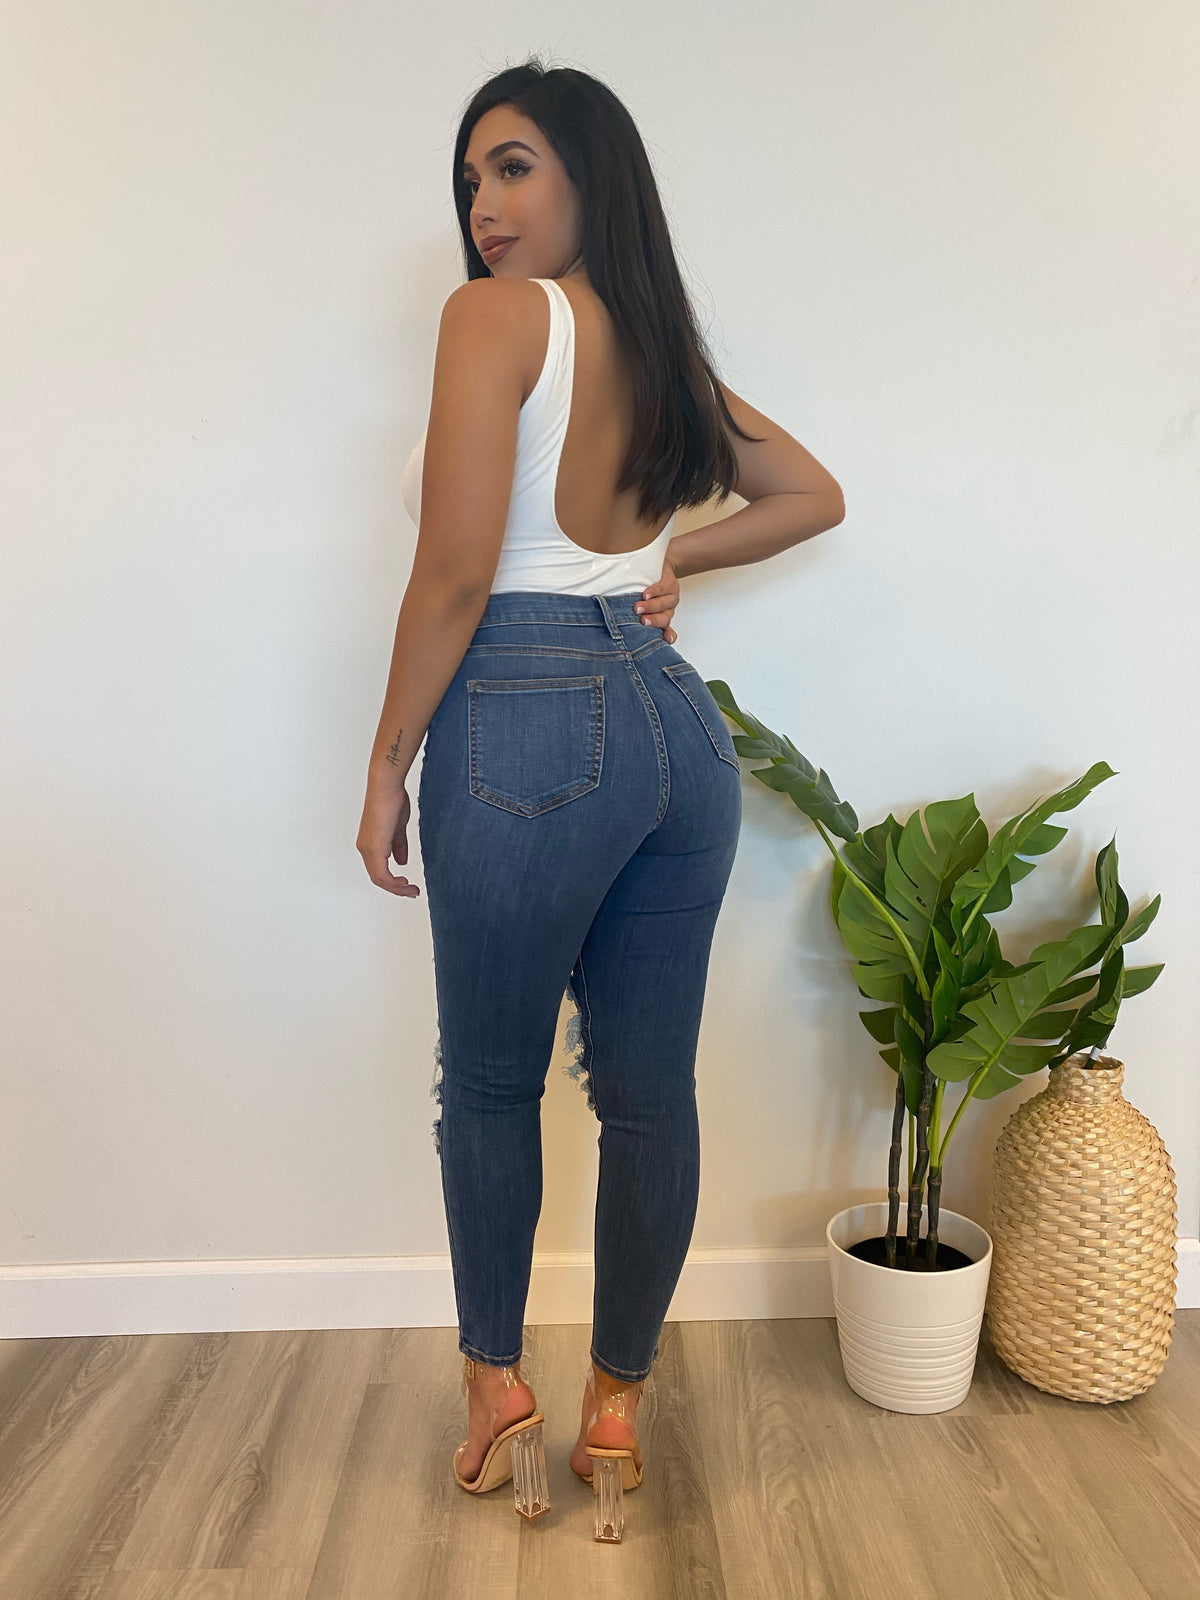 denim high rise jeans, distressed at the knees and high thigh, length to above ankle.